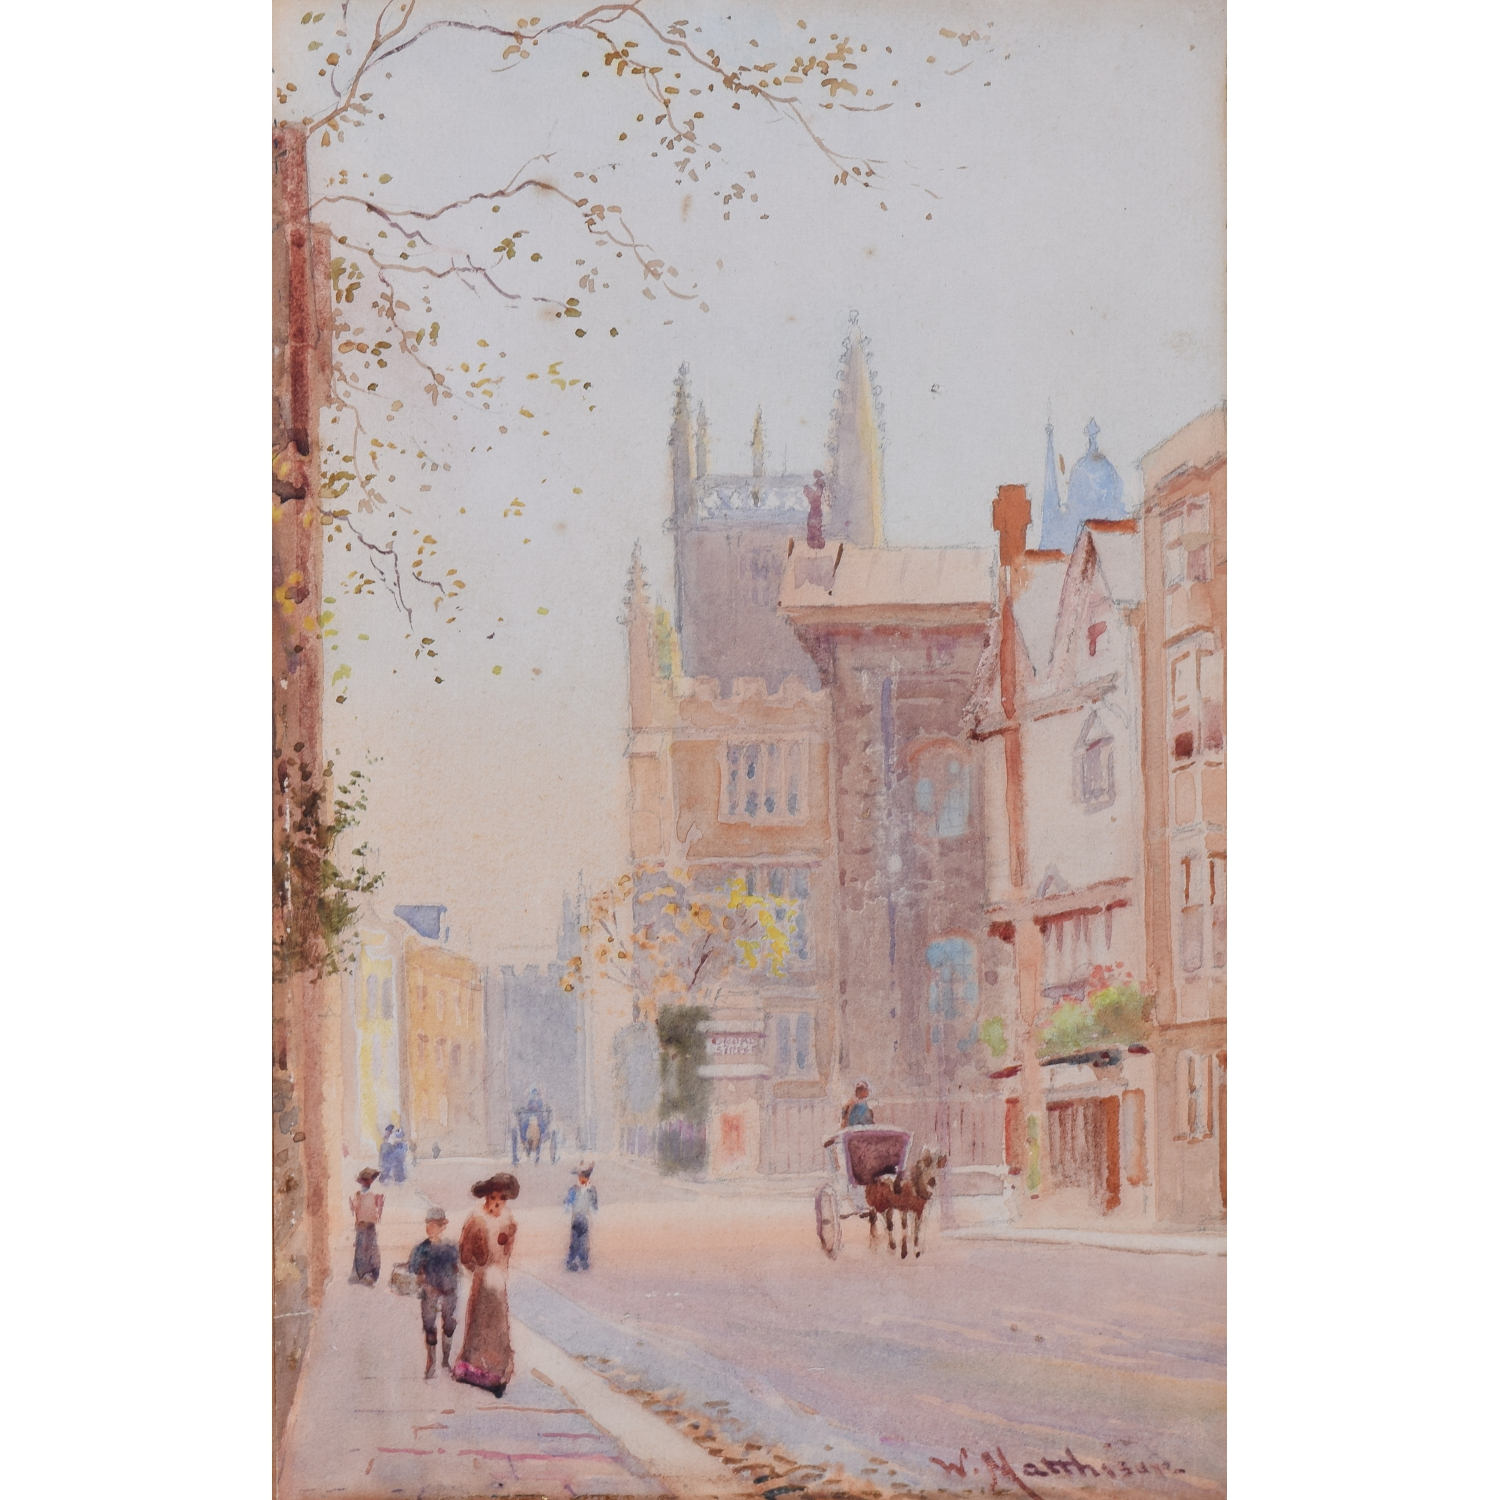 William Matthison watercolour Exeter and Balliol Colleges Oxford from the Sheldonian for sale